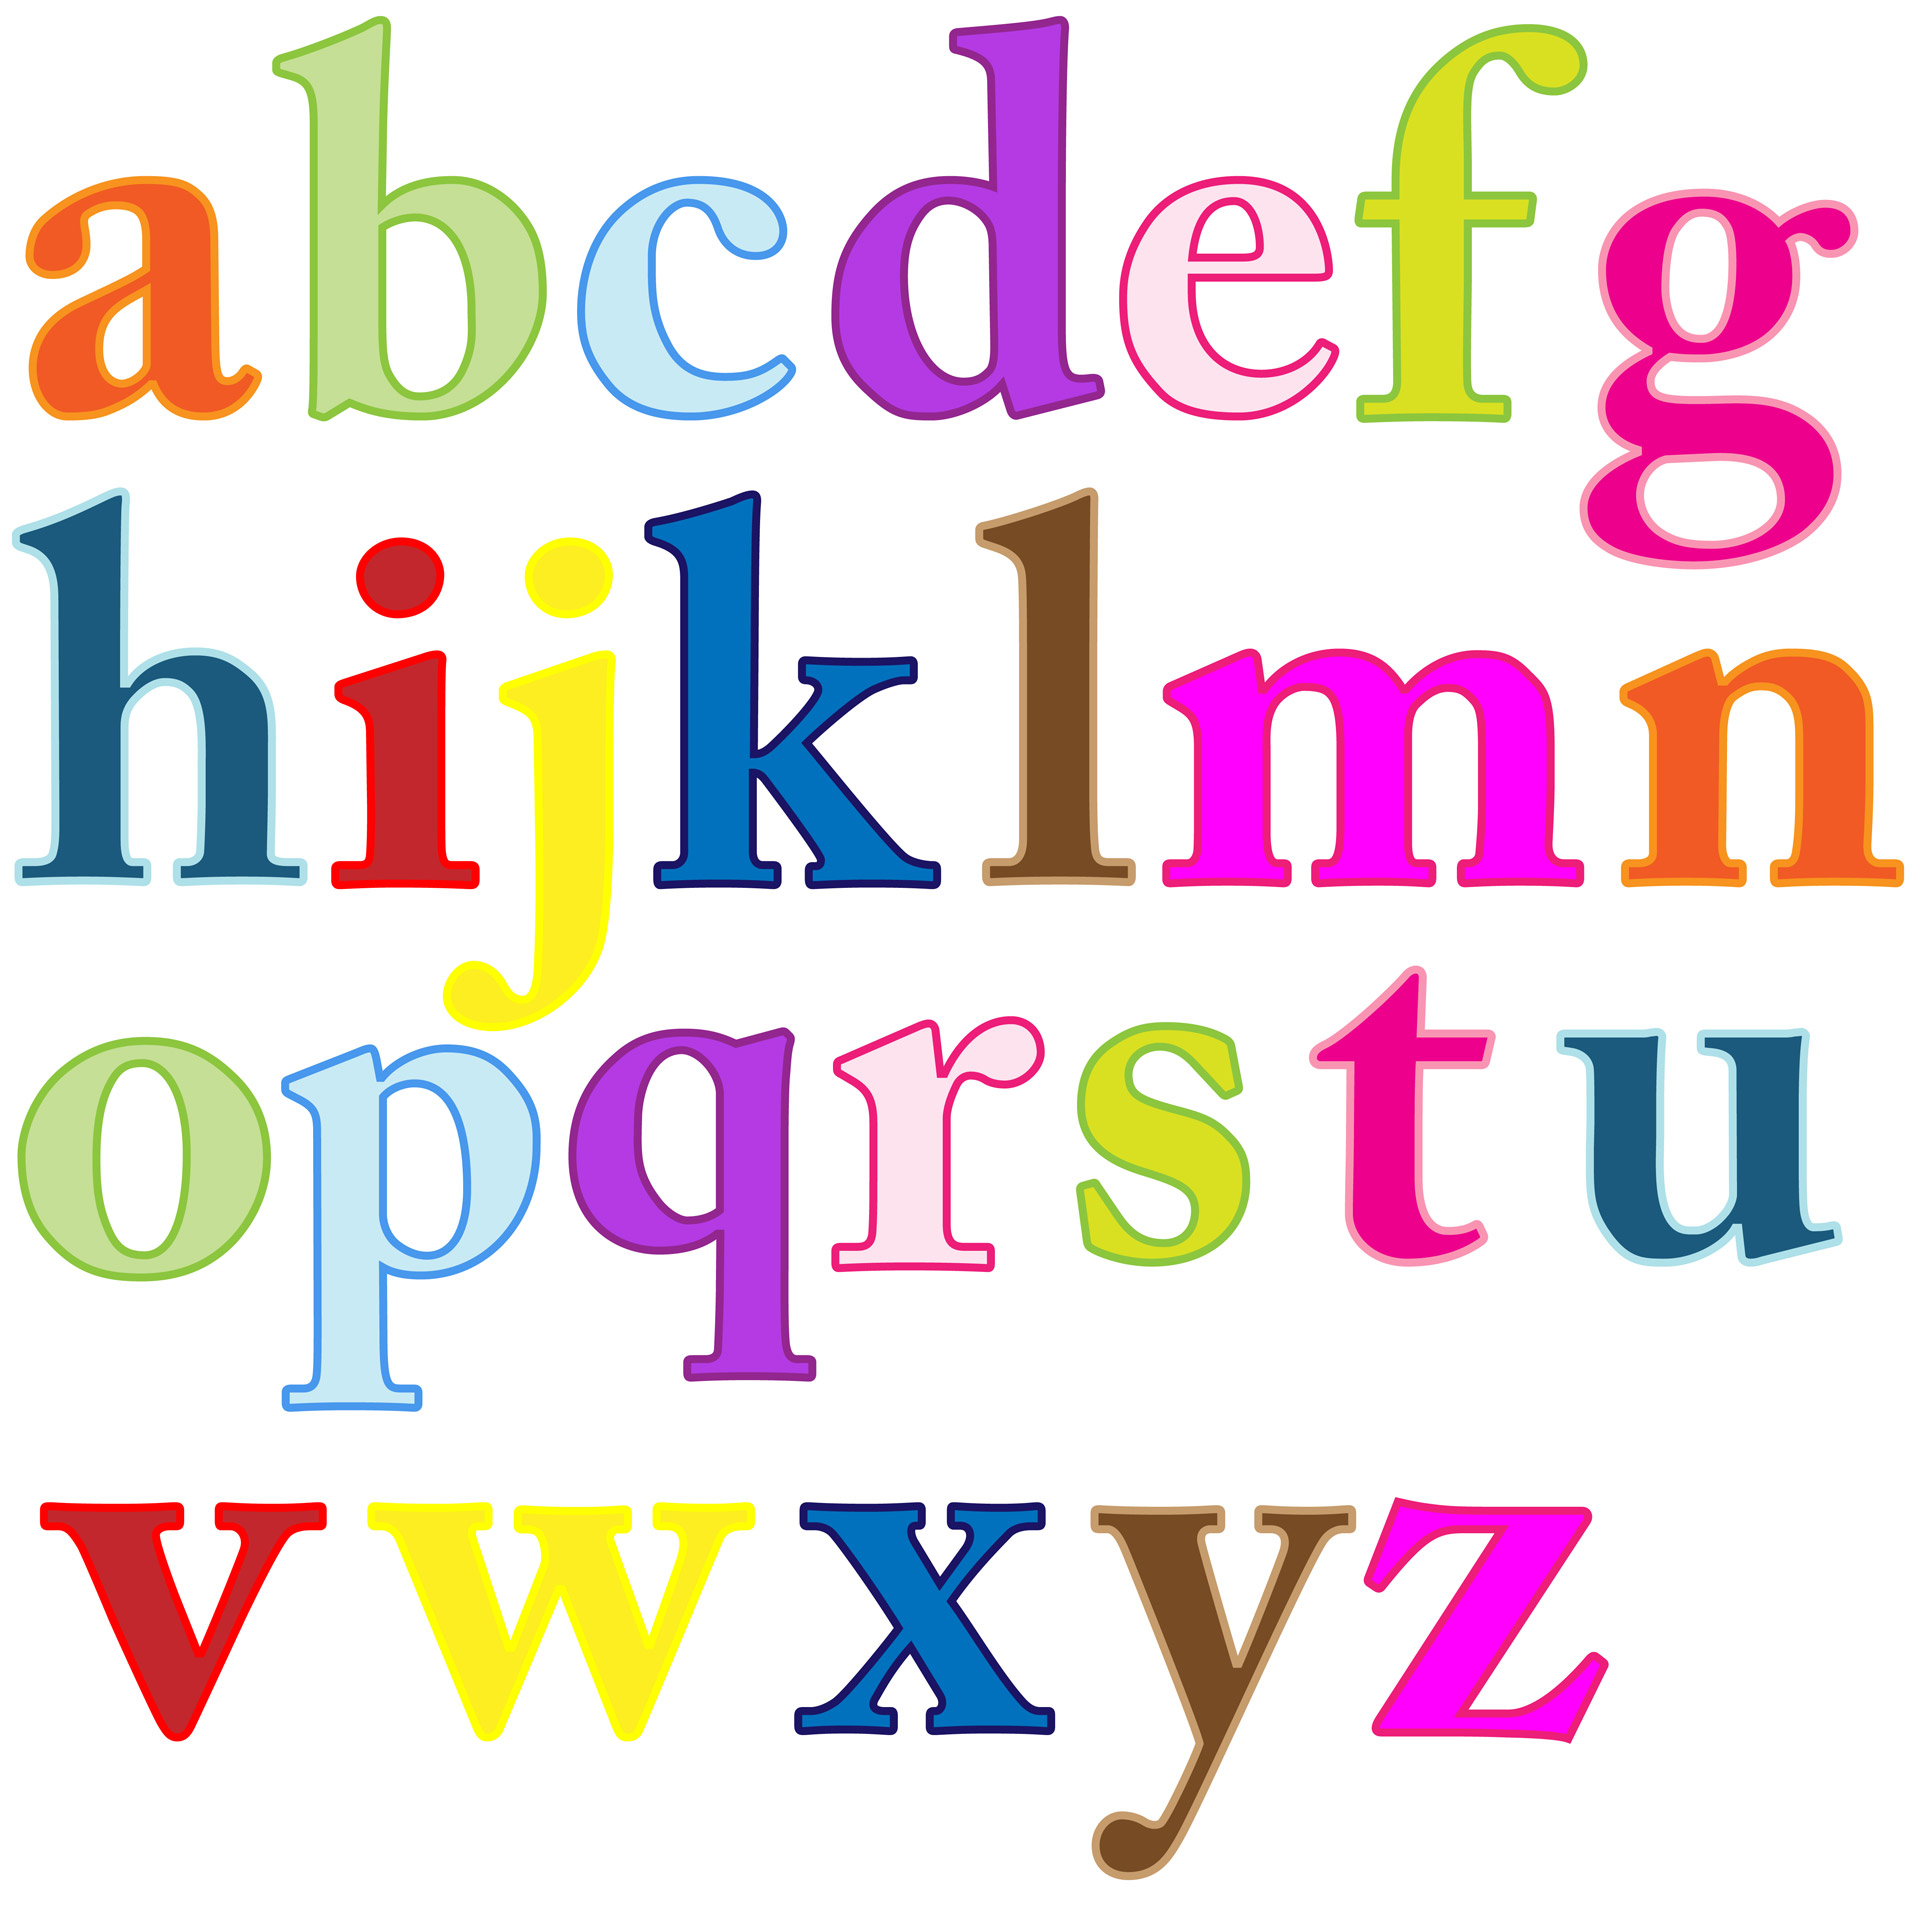 1920x1920 Alphabet Letters Clip Art Free Stock Photo